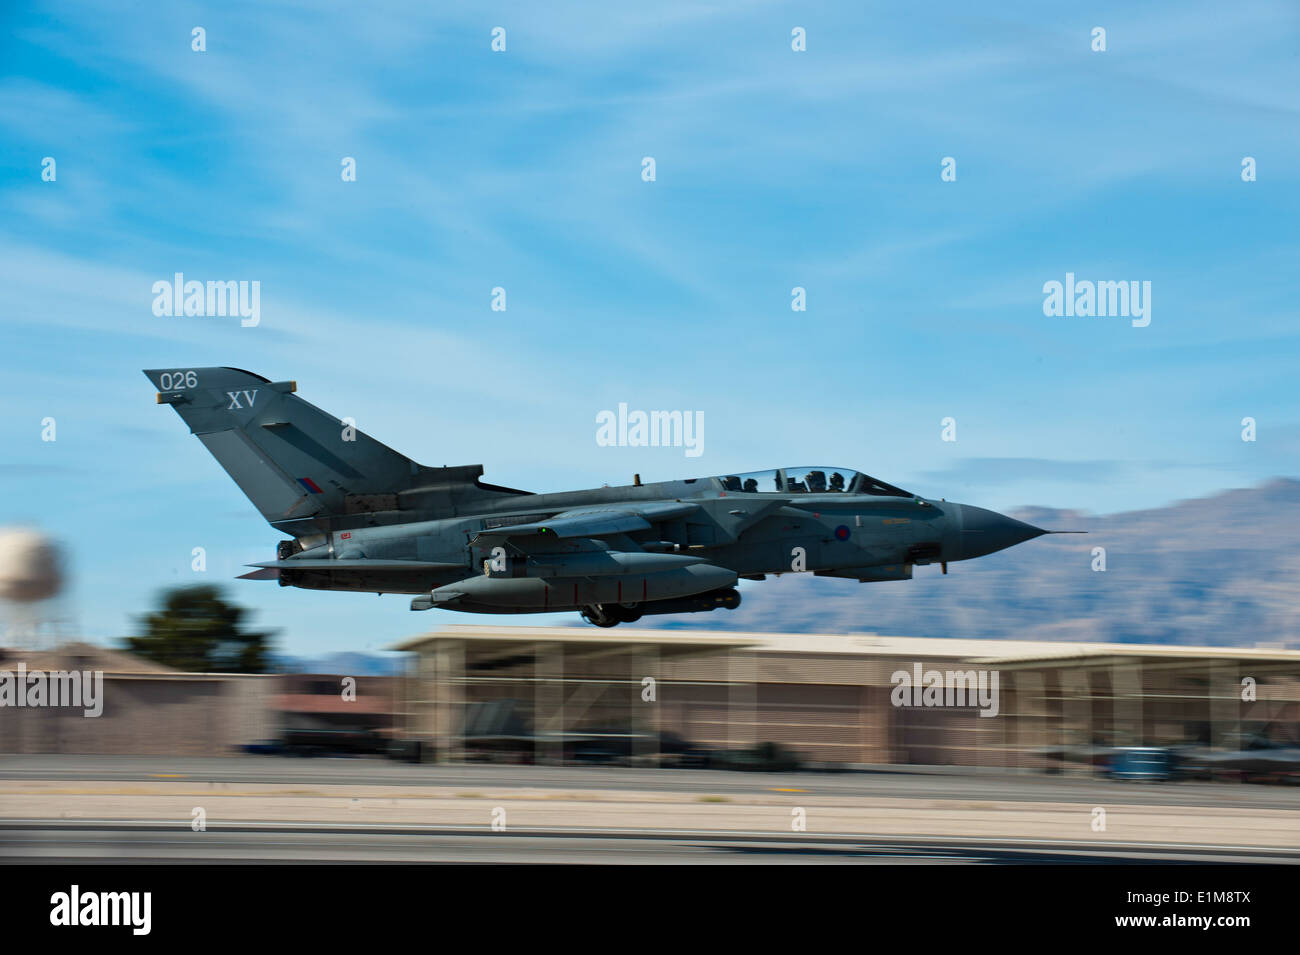 A British Royal Air Force Tornado GR4 aircraft attached to the No. 9 Squadron takes off during Red Flag 14-1 at Stock Photo